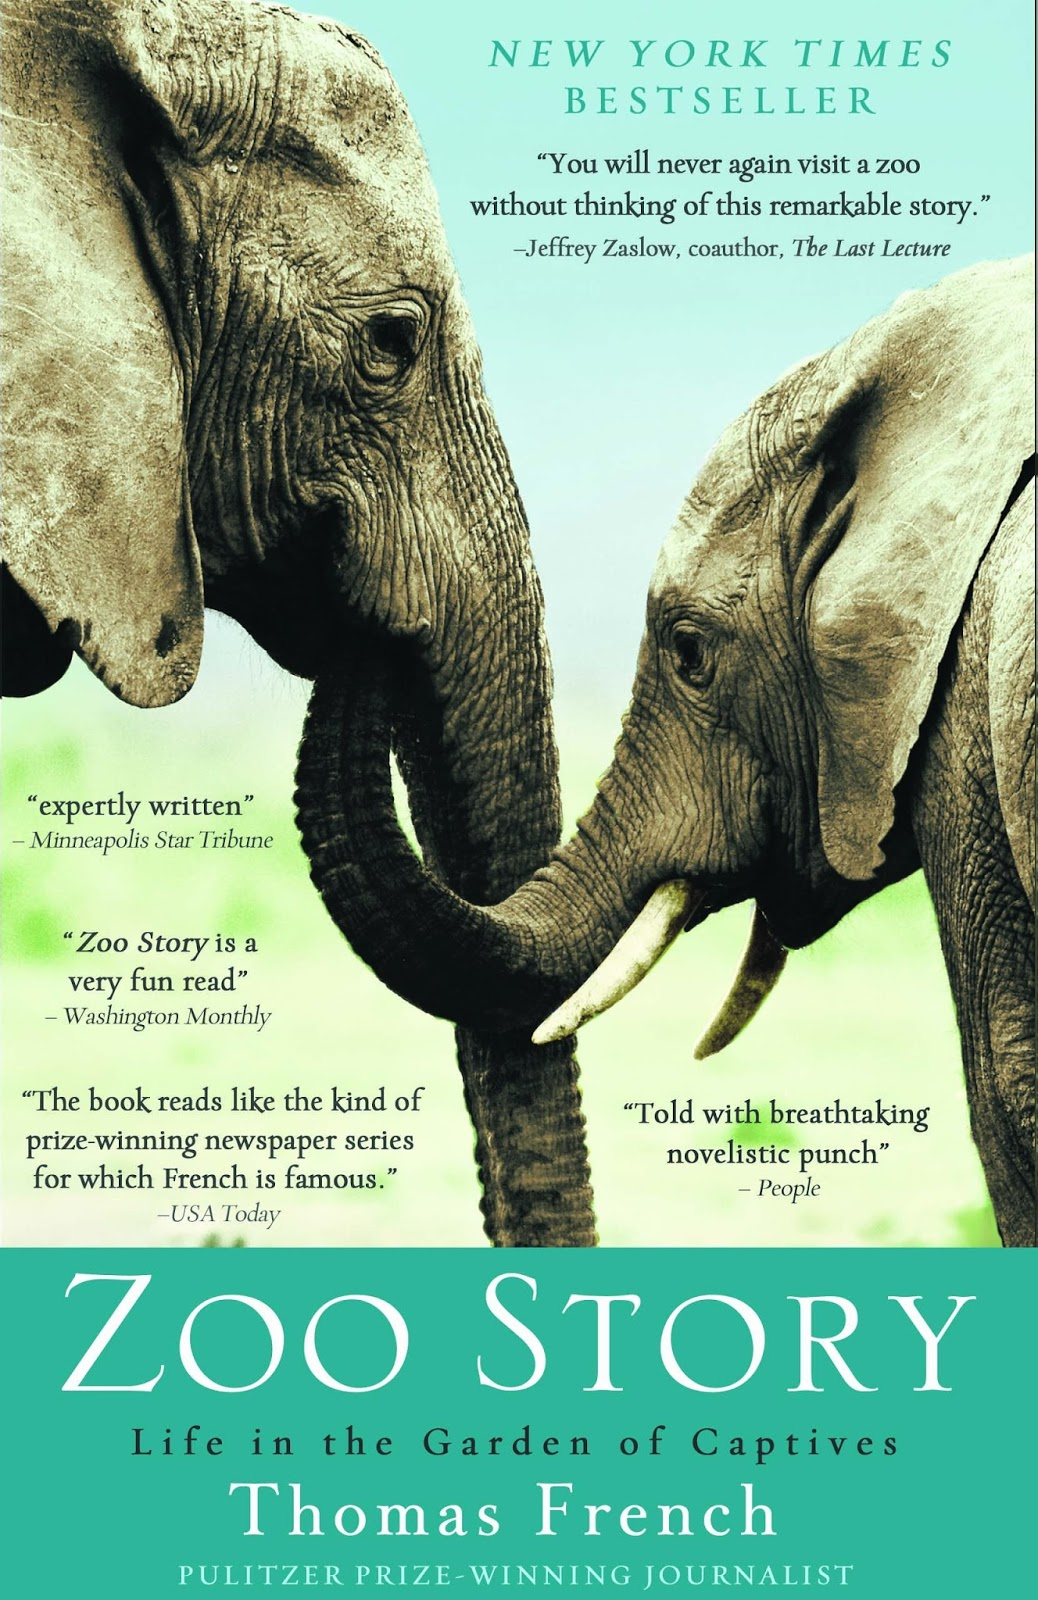 essay zoo animals How to behave in a zoo many people, especially parents with their children, visit  zoos for pleasure it's interesting to see native animals up close or exotic.